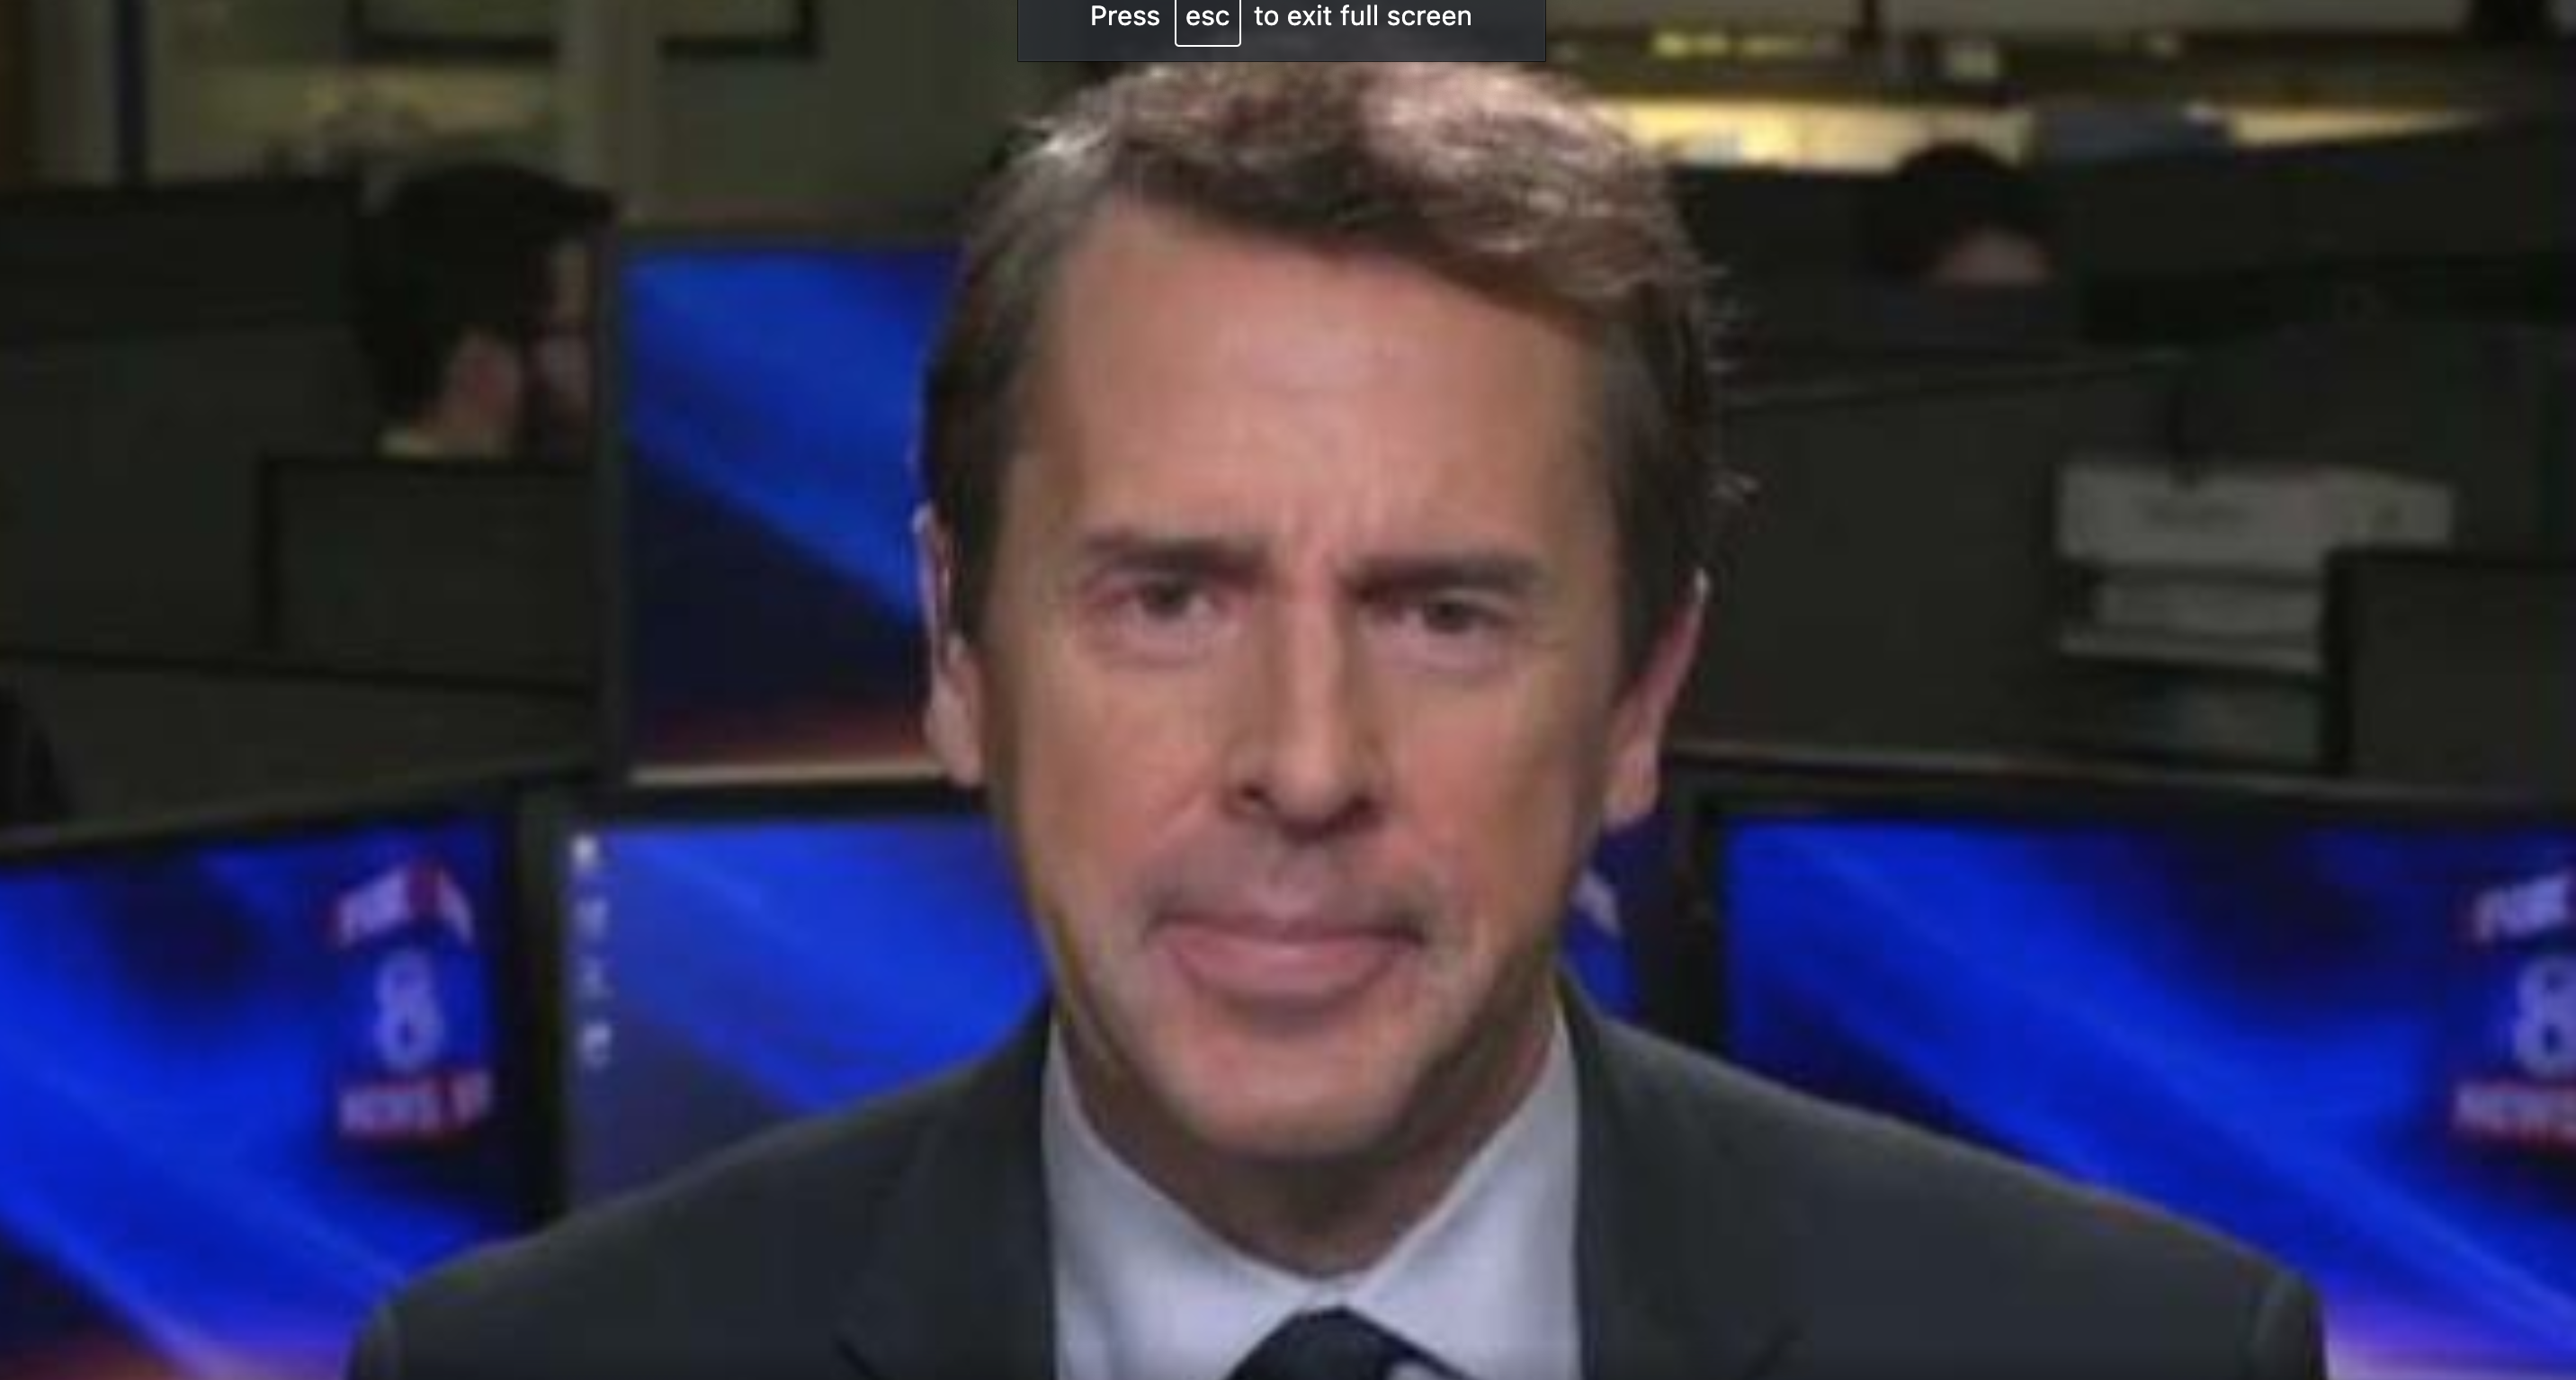 Westlake Legal Group Screen-Shot-2019-11-22-at-6.55.01-PM Rep. Mark Walker on potential impeachment trial: 'It won't be the same Schiff, different day' Joshua Nelson fox-news/shows/fox-news-night fox-news/media/fox-news-flash fox news fnc/media fnc eeadc419-c1eb-52a1-816f-54a0efc9ff8d article